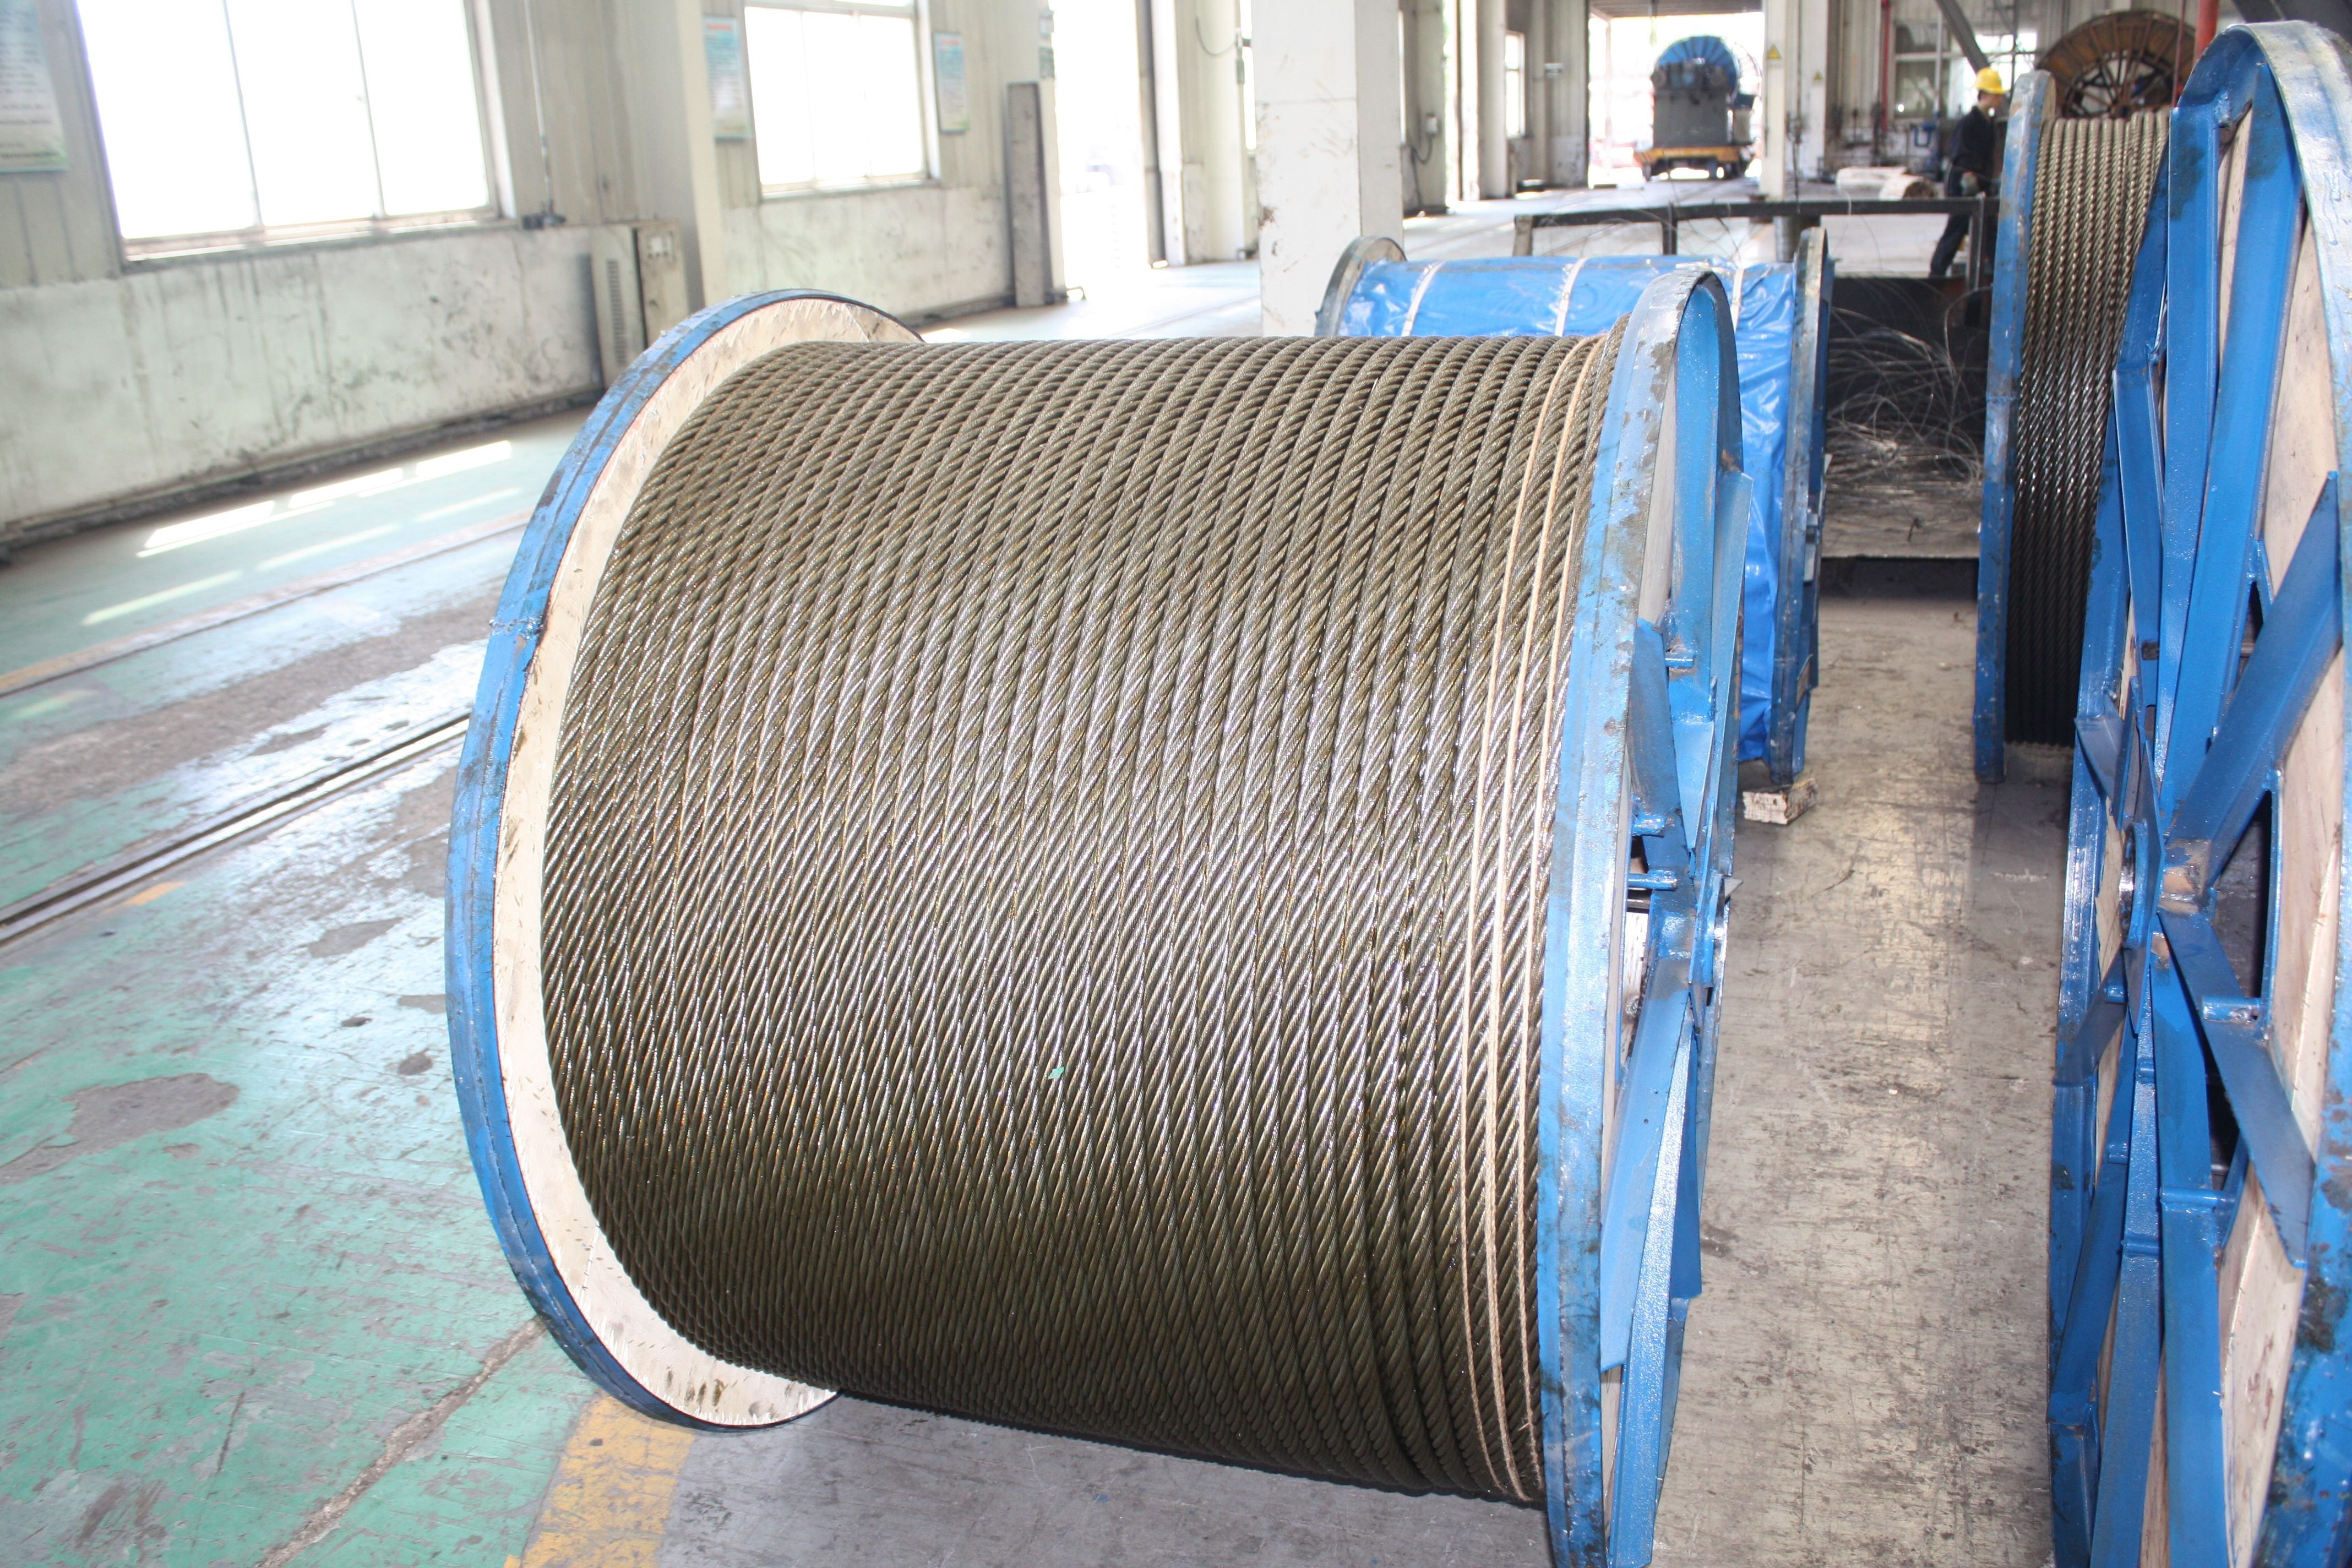 Stainless Steel Wire Rope, Cable supplier and Manufacturer